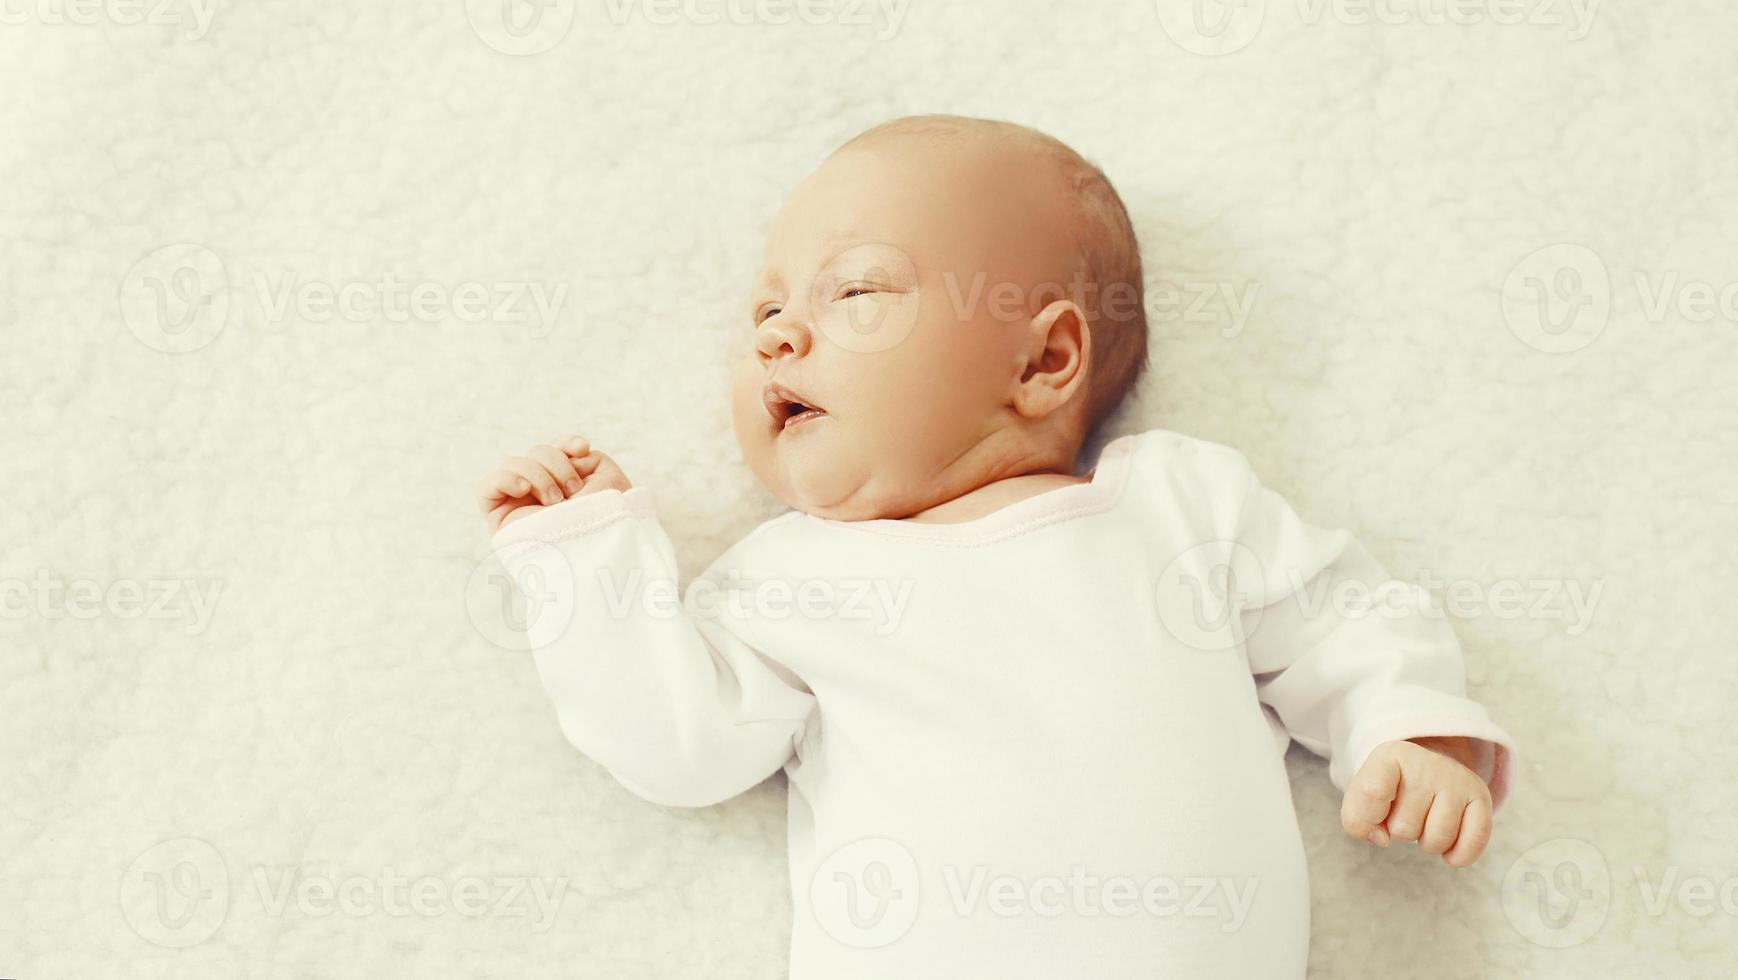 Portrait of cute baby sweet sleeping on the bed photo